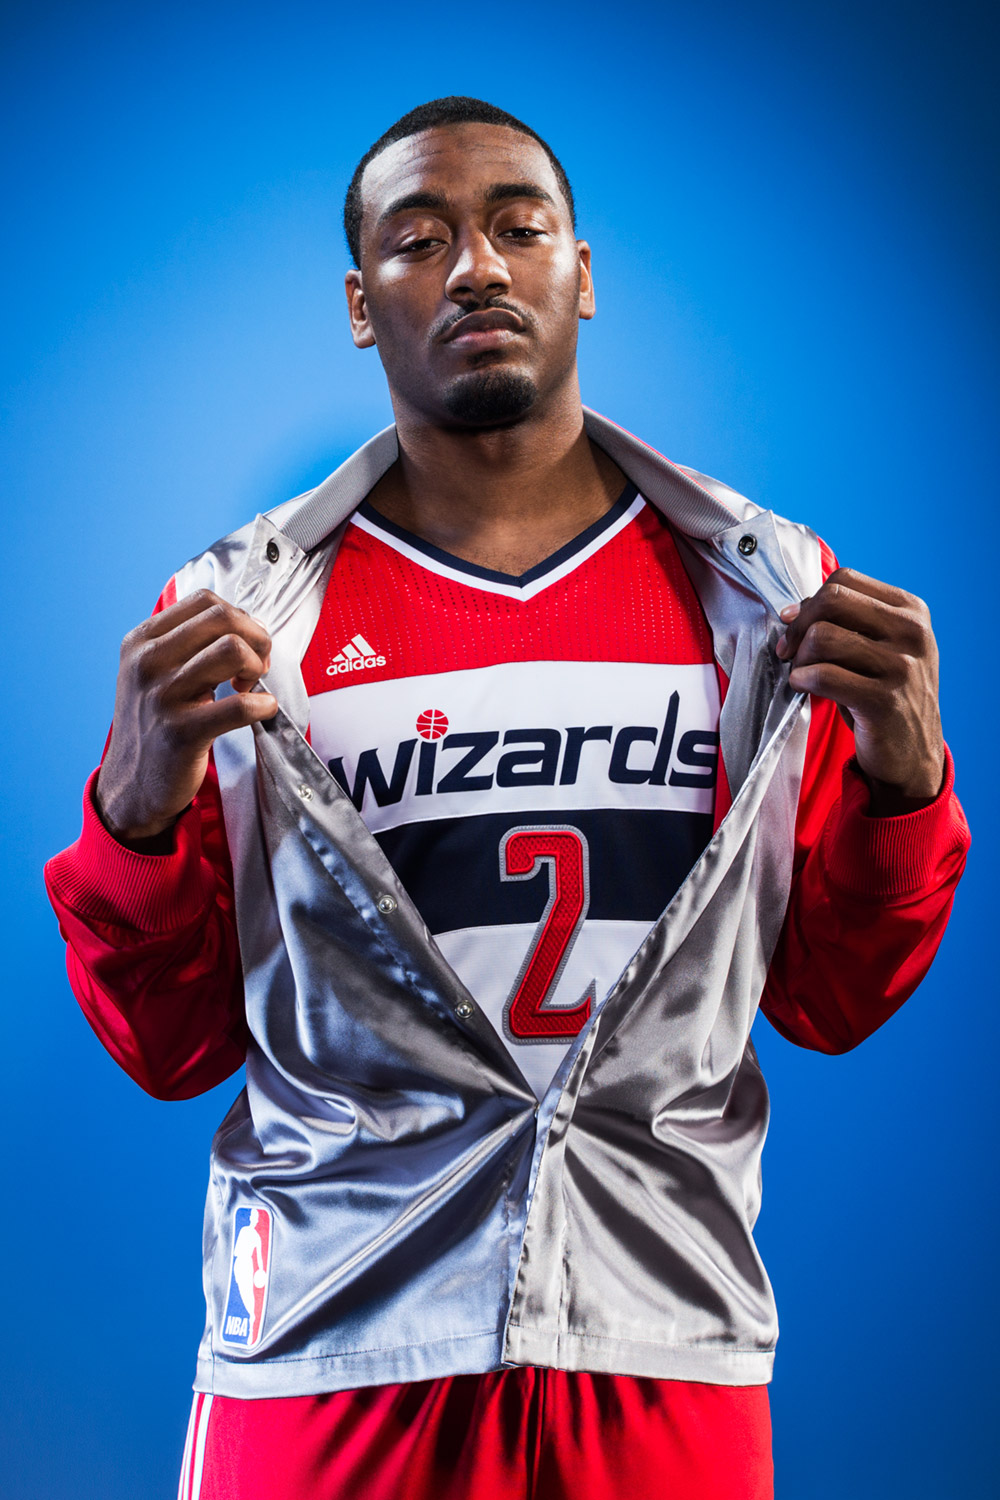 John Wall retouching done in Portland, OR